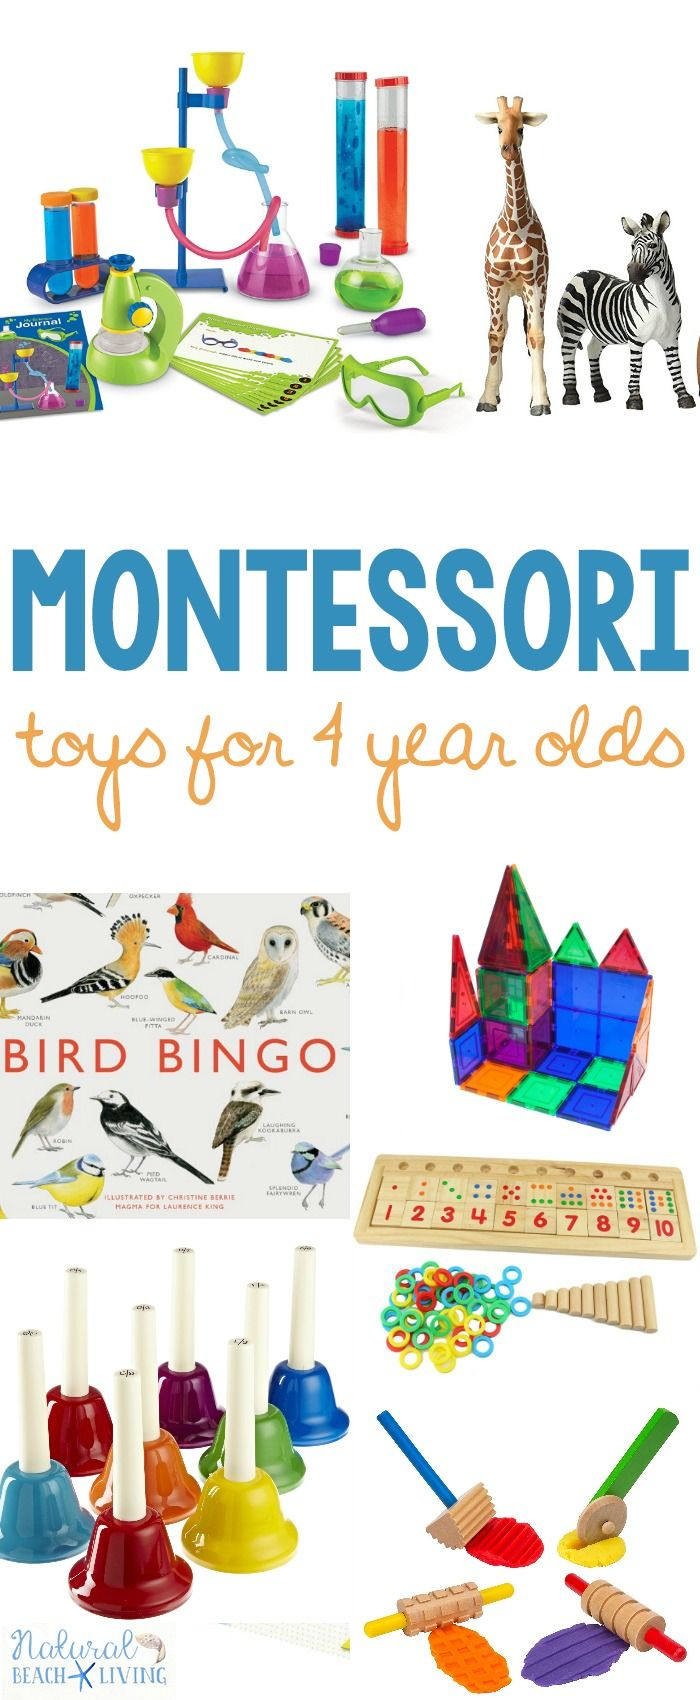 The Ultimate Guide for The Best Montessori Toys for 4 Year Olds, Montessori Toys, Toys for Preschoolers, Educational Toys, Montessori Toys Kindergarten,Gift